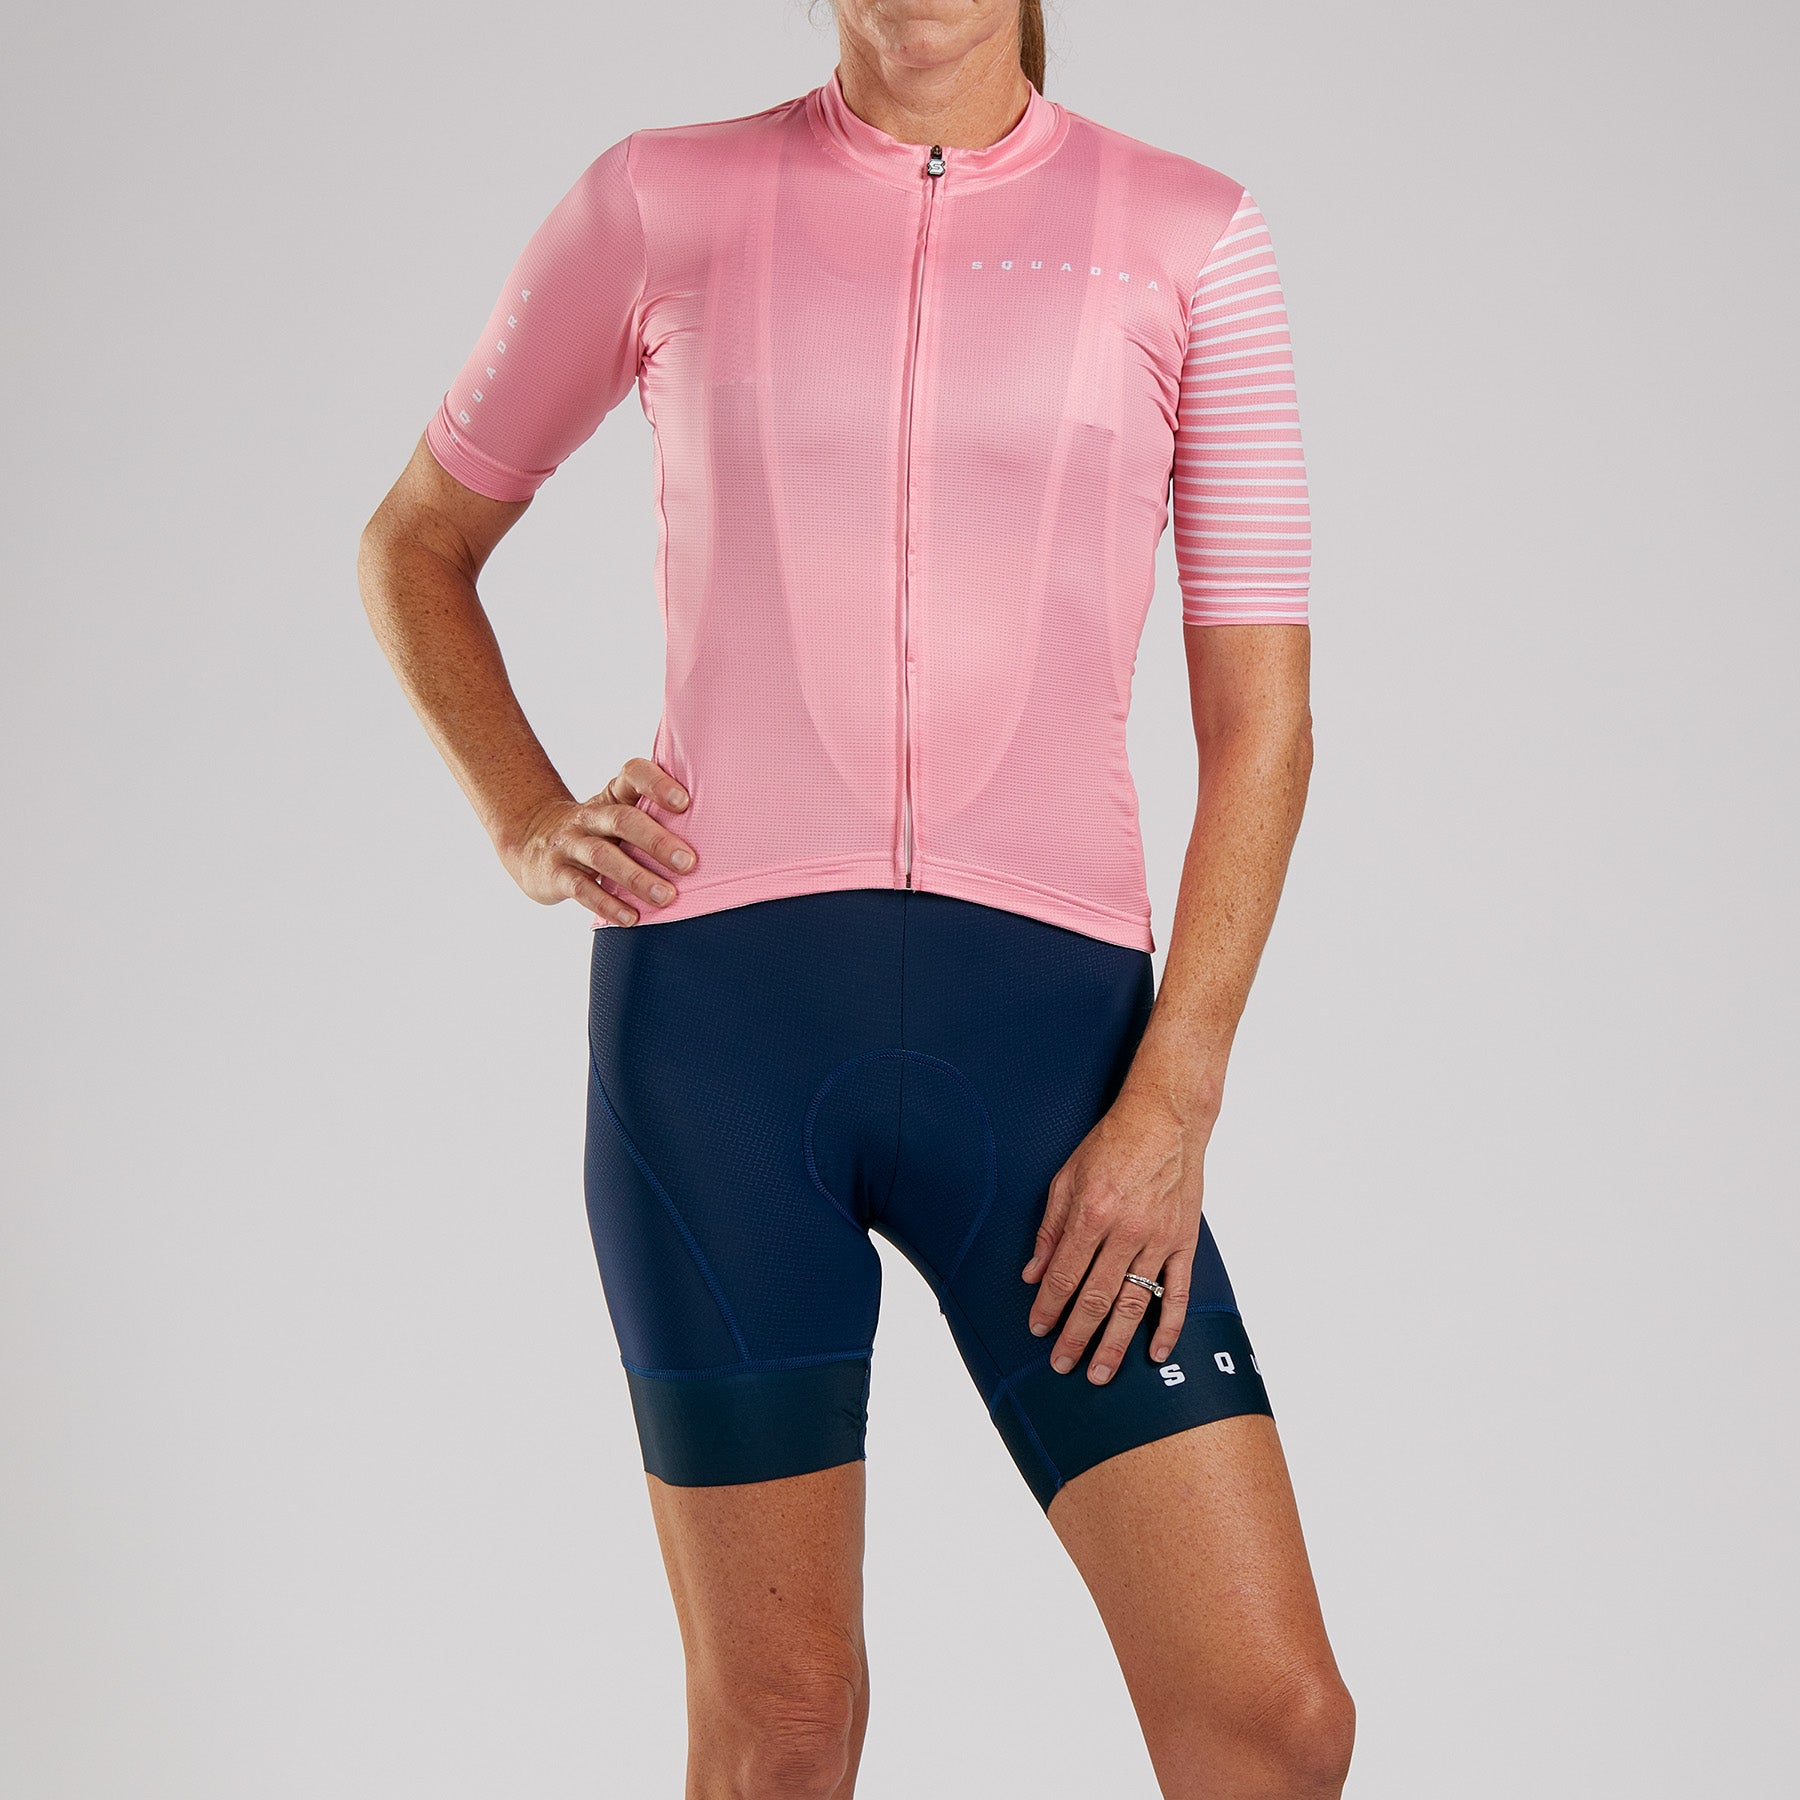 WOMENS PRO ISSUE AERO JERSEY - ROSA